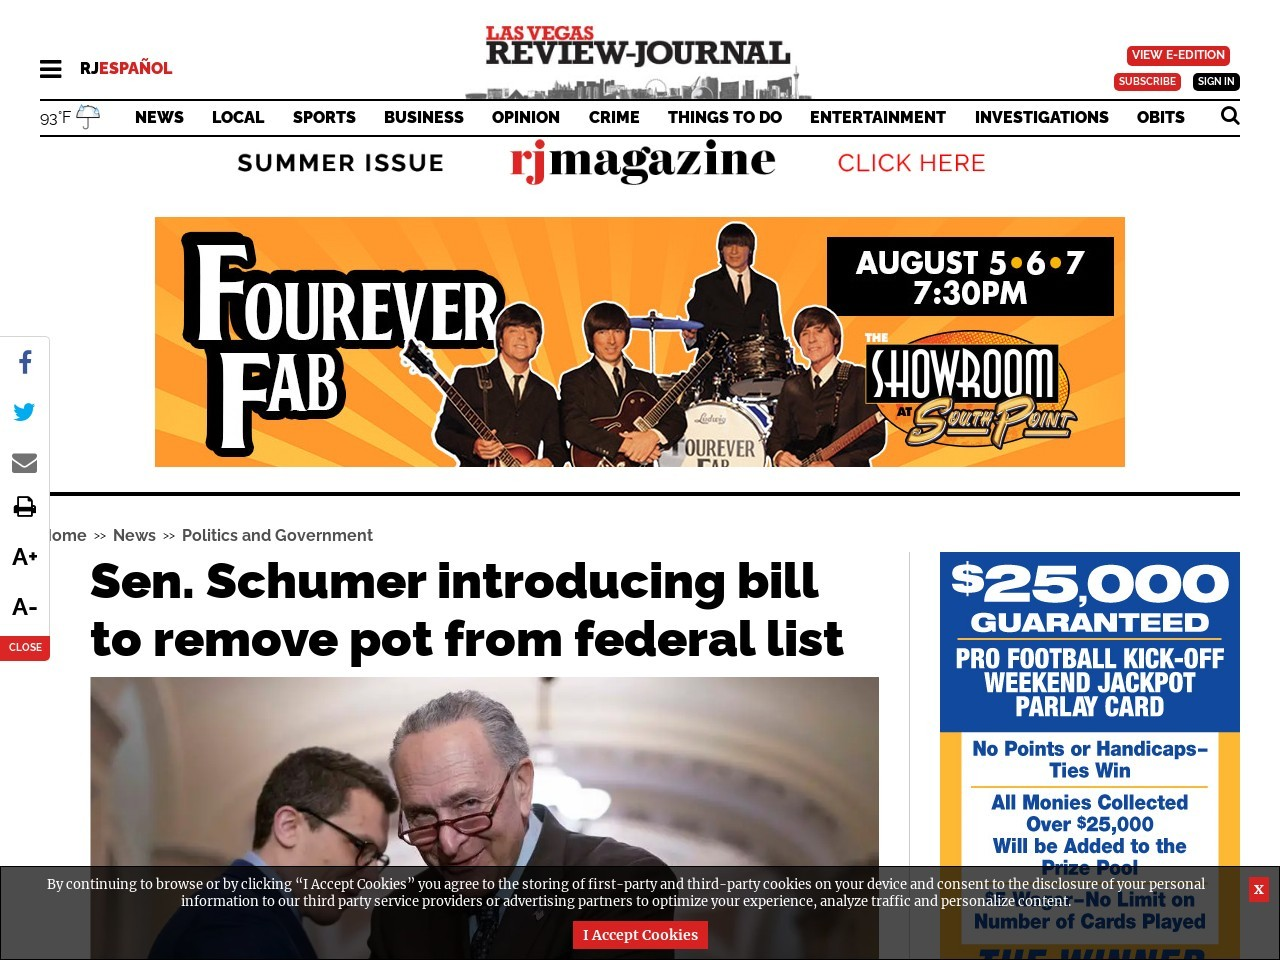 Sen. Schumer introducing bill to remove pot from federal list